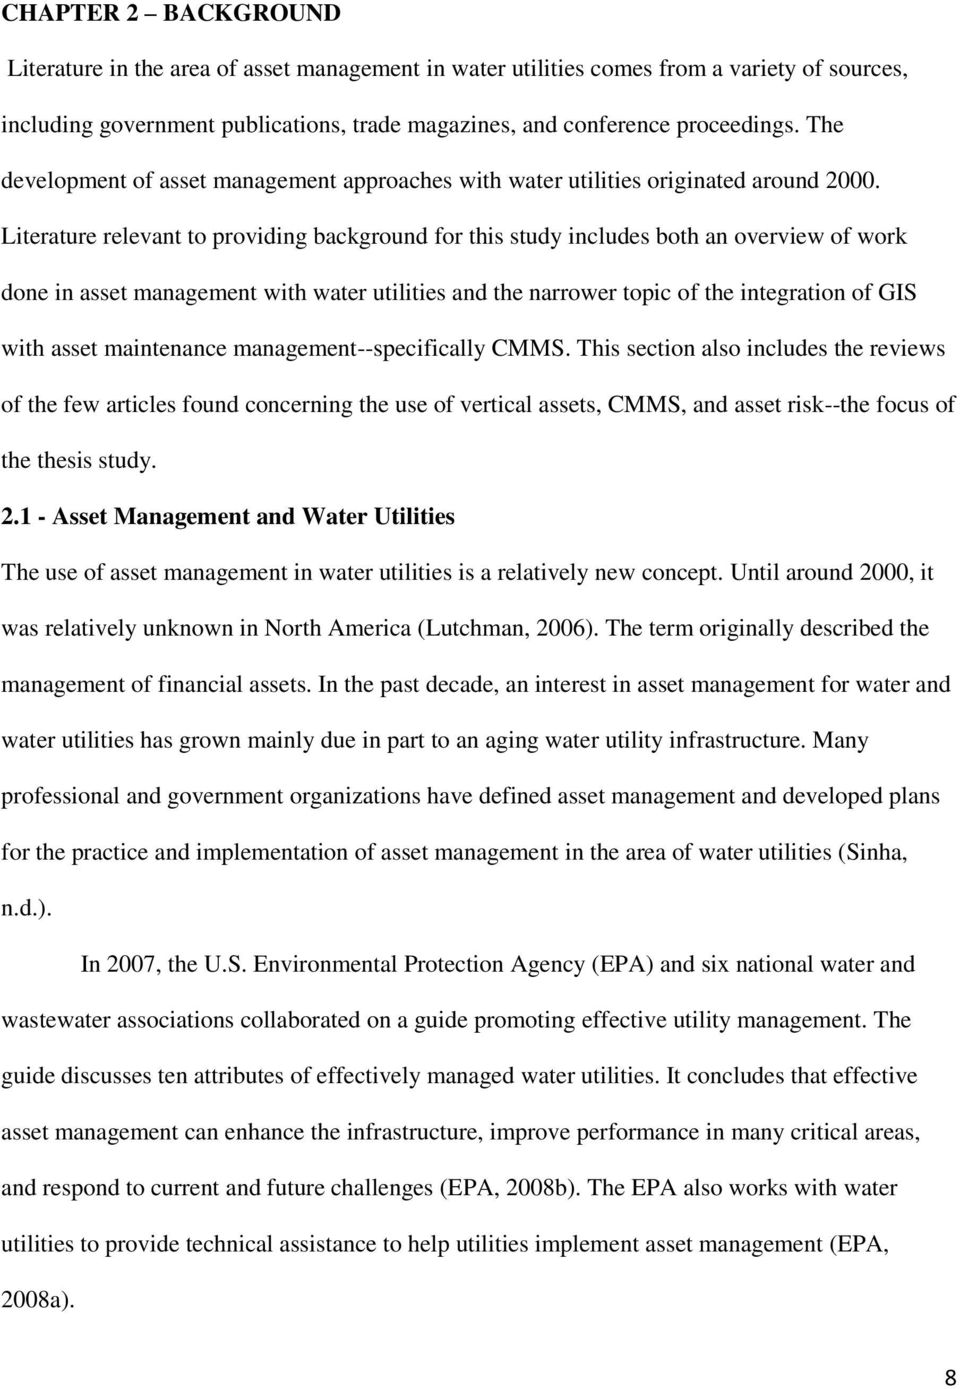 Literature relevant to providing background for this study includes both an overview of work done in asset management with water utilities and the narrower topic of the integration of GIS with asset